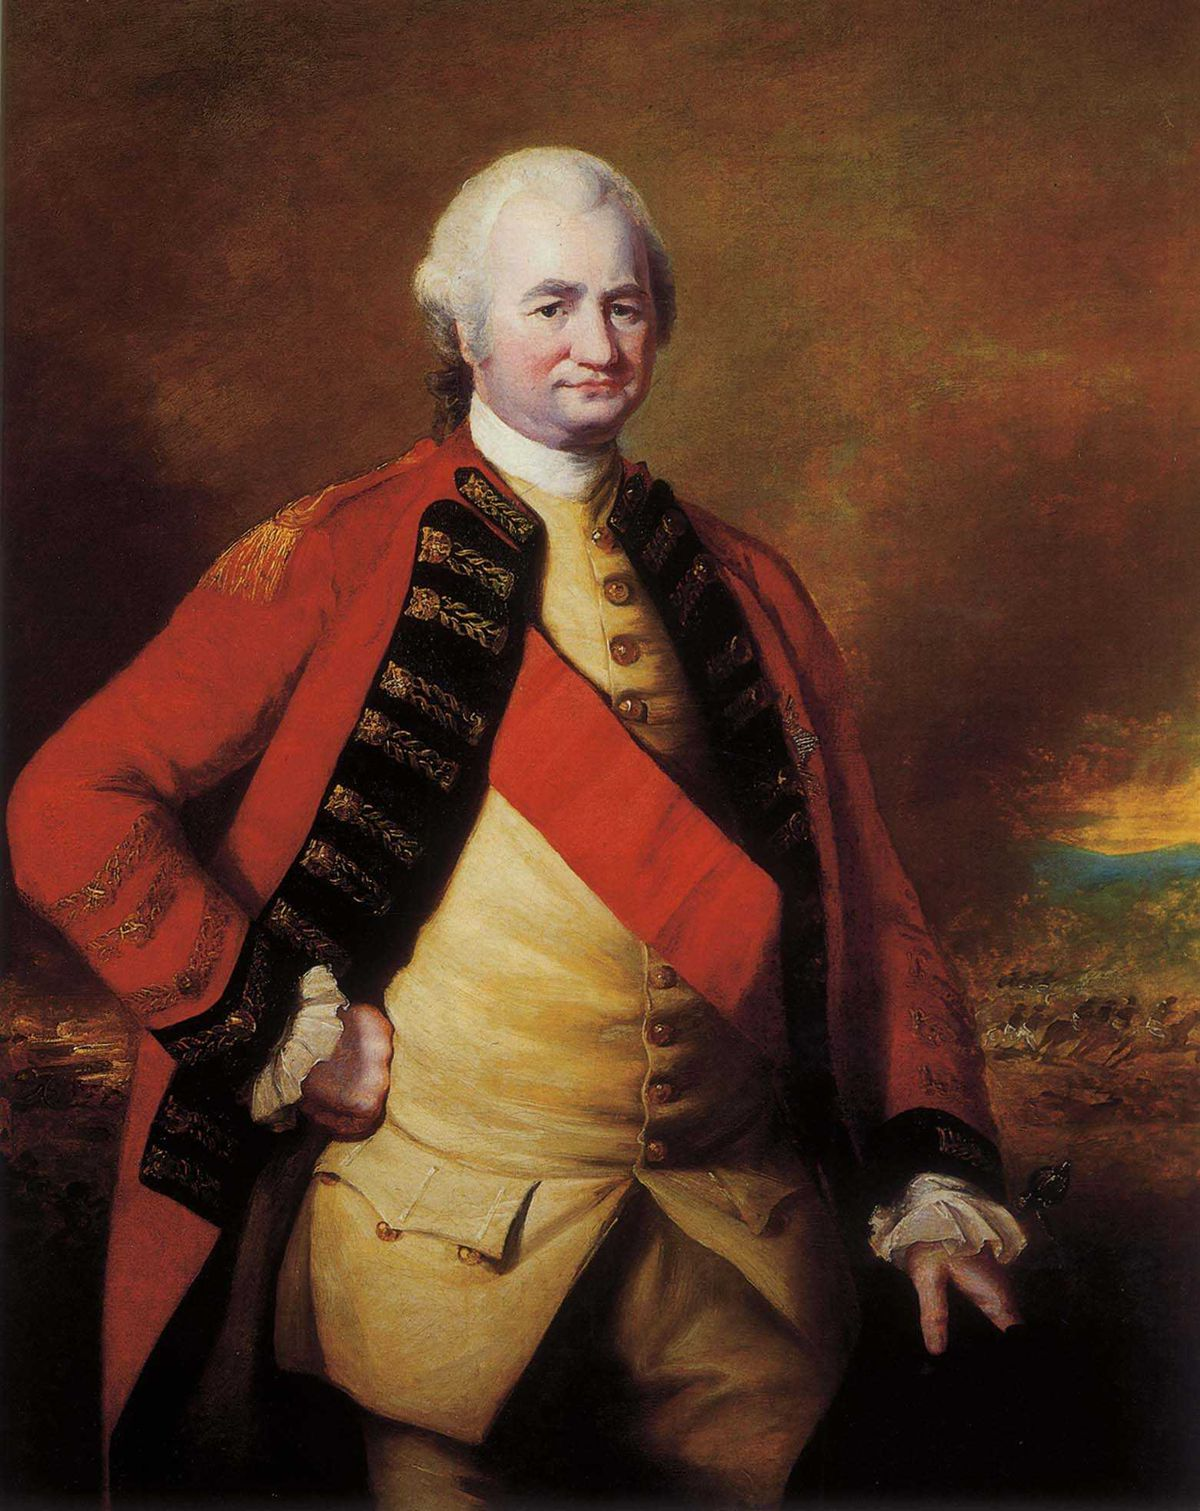 Clive of India